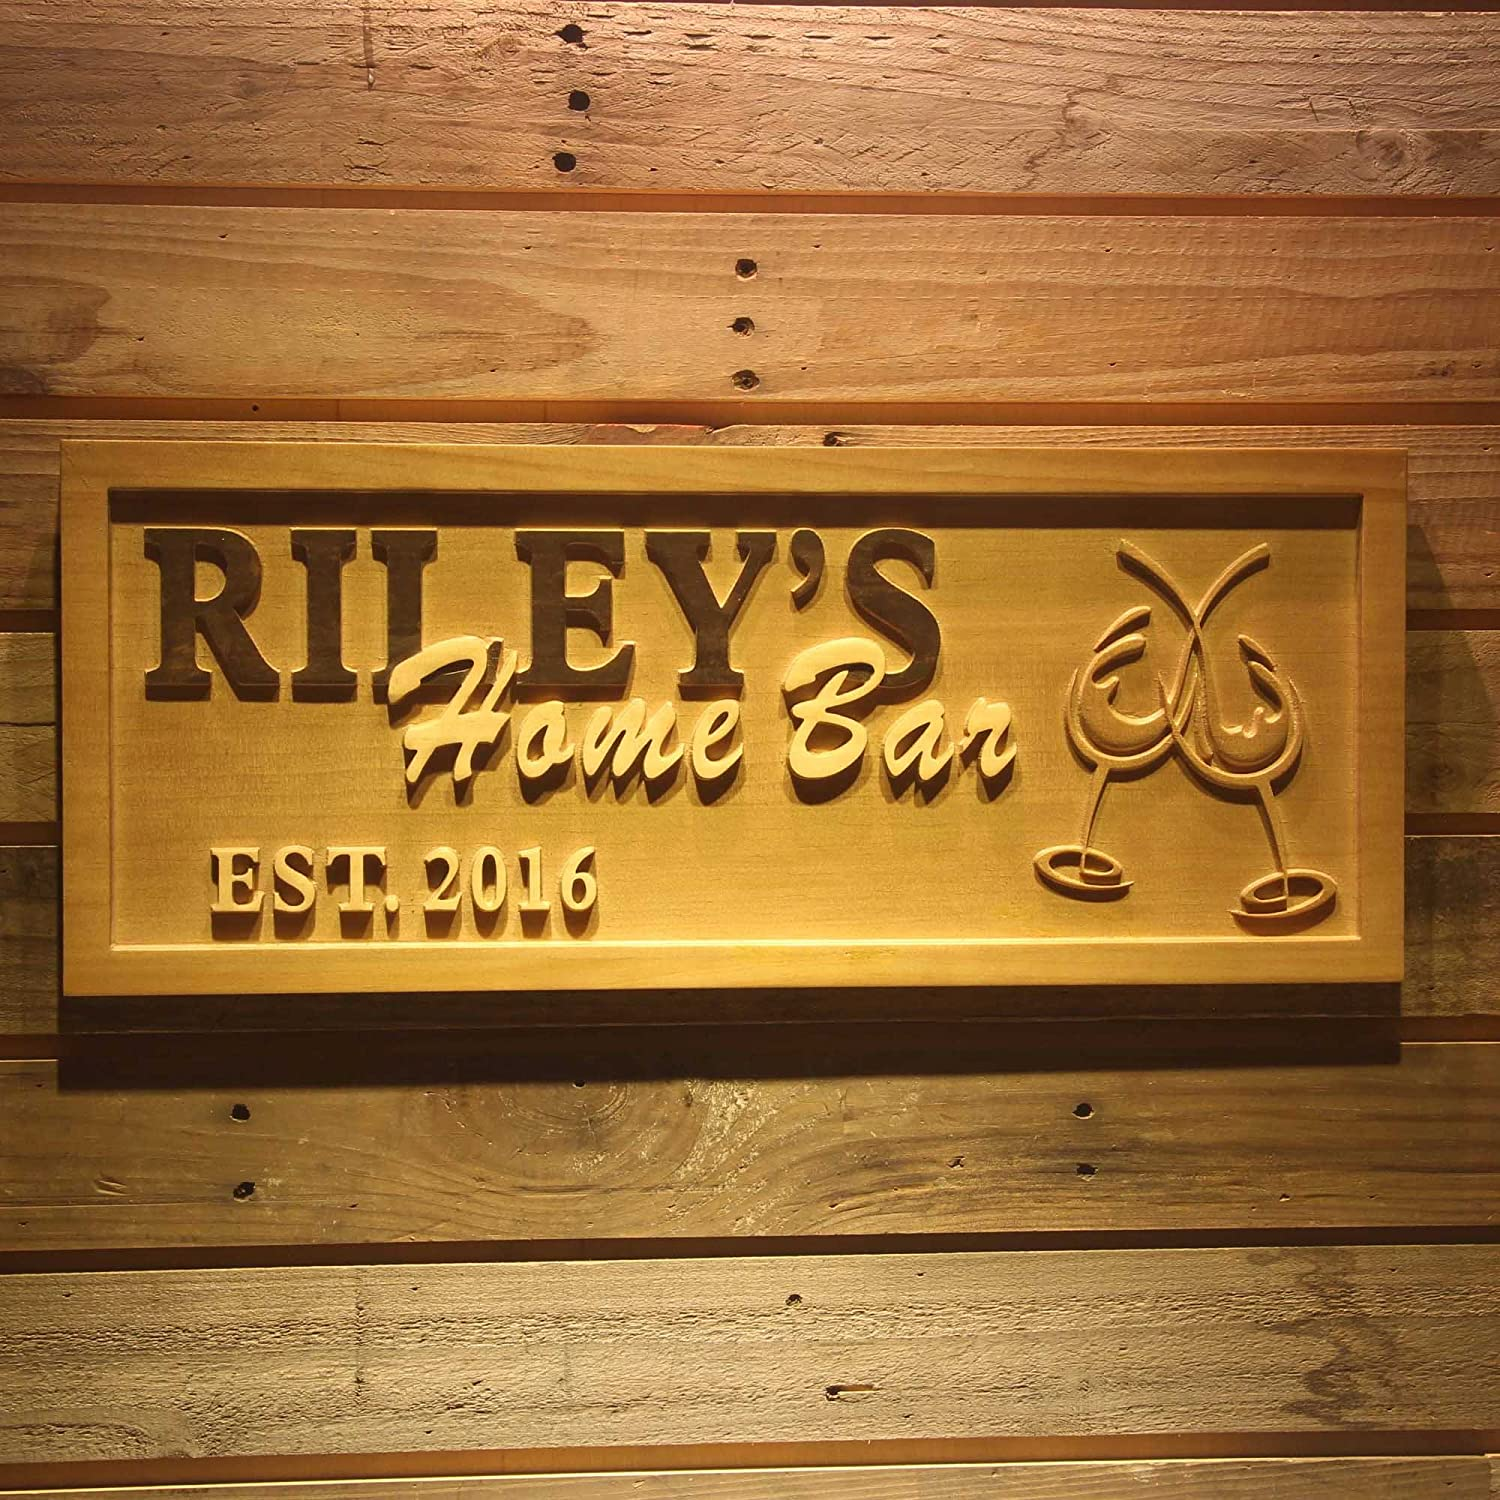 Wpa0165 Name Personalized Home Bar Cheers with EST. Year Wood Engraved Wooden Sign - Standard 23  x 9.25